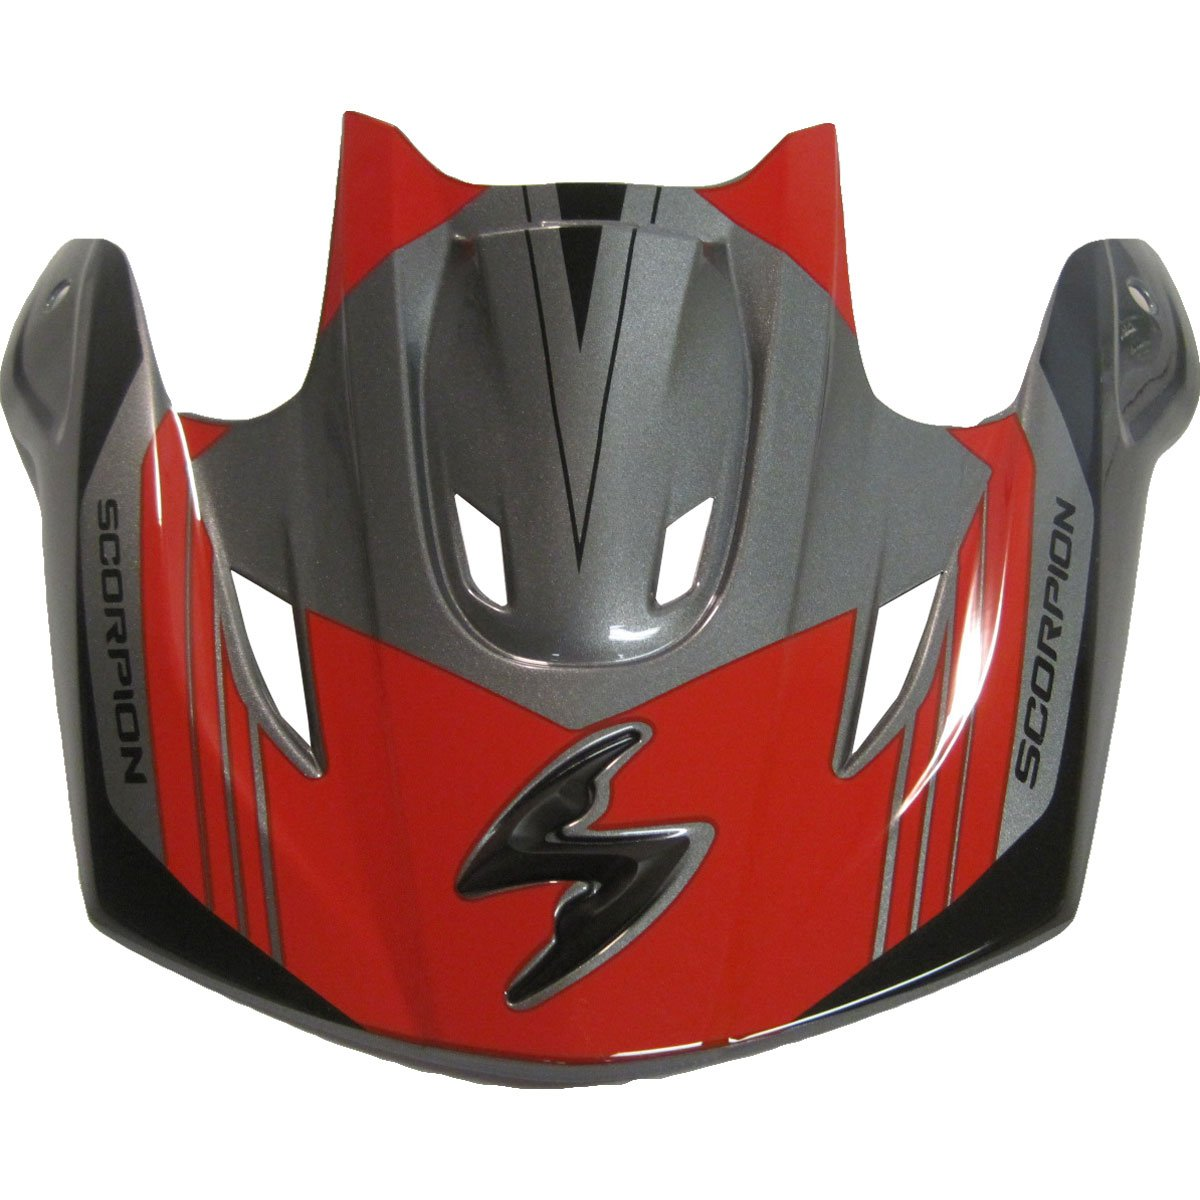 e438e082 Amazon.com: Scorpion Peak Visor Vx-R70 Motorcycle Helmet Accessories -  Barstow Red/One Size: Automotive